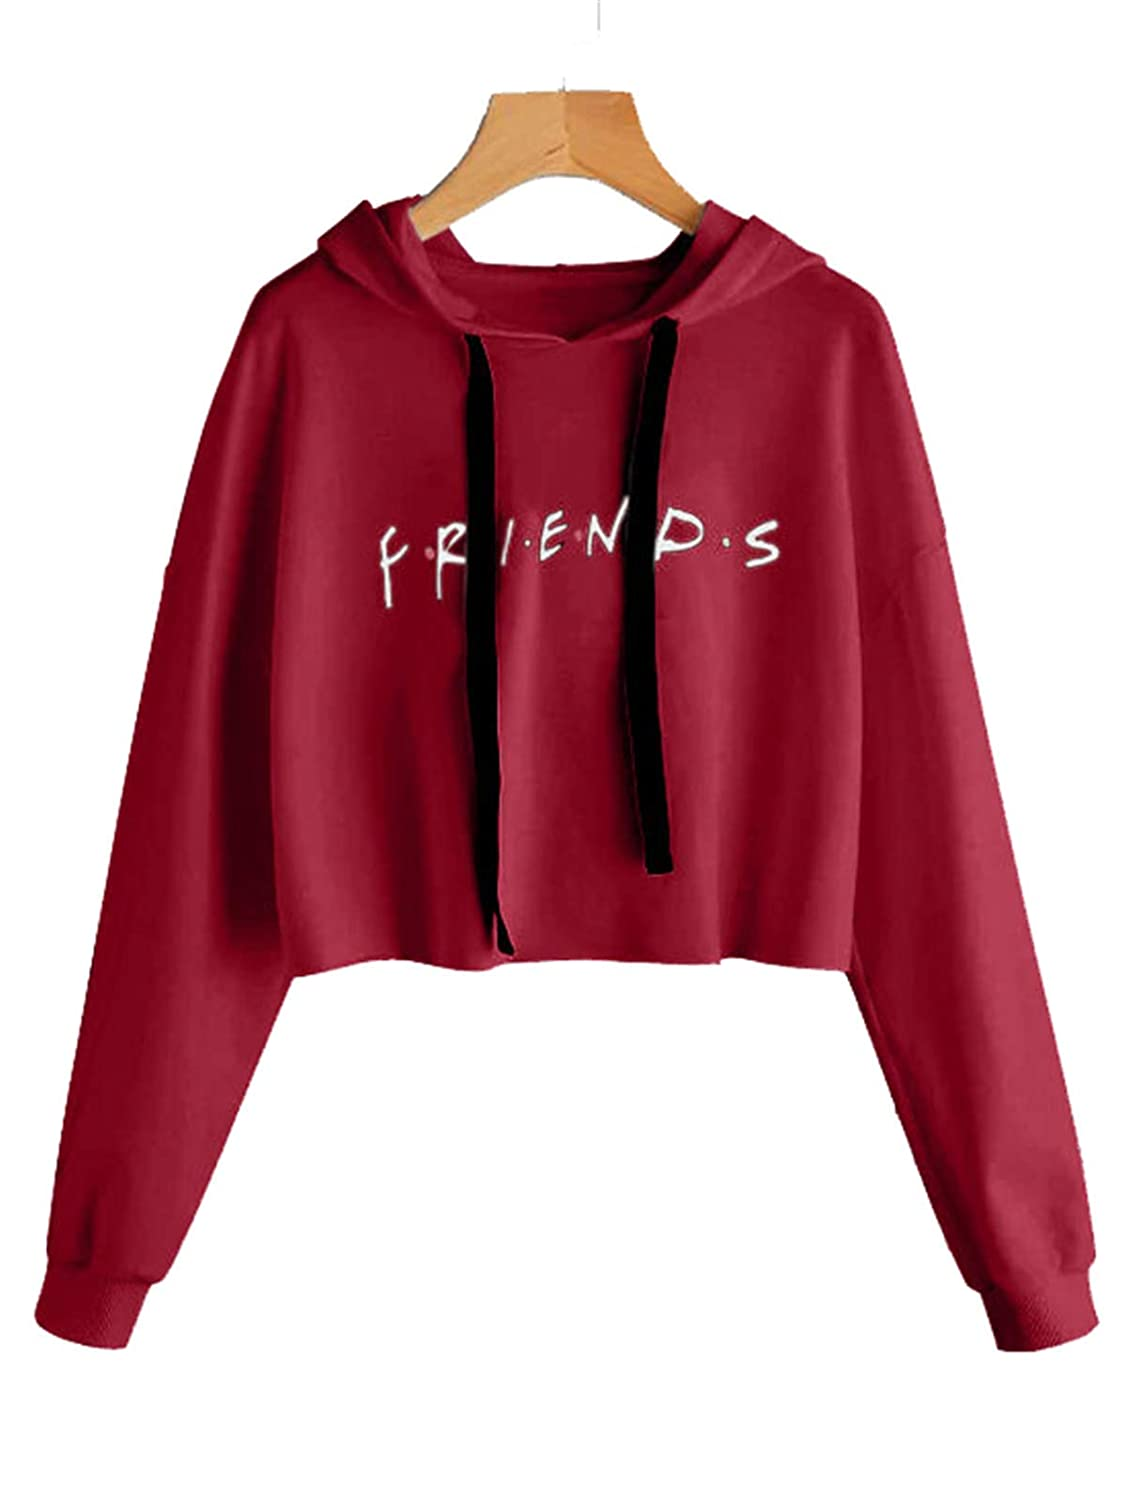 ALAPUSA Friends TV Show Sweatshirt Graphic Crop Top HXZ2018081302